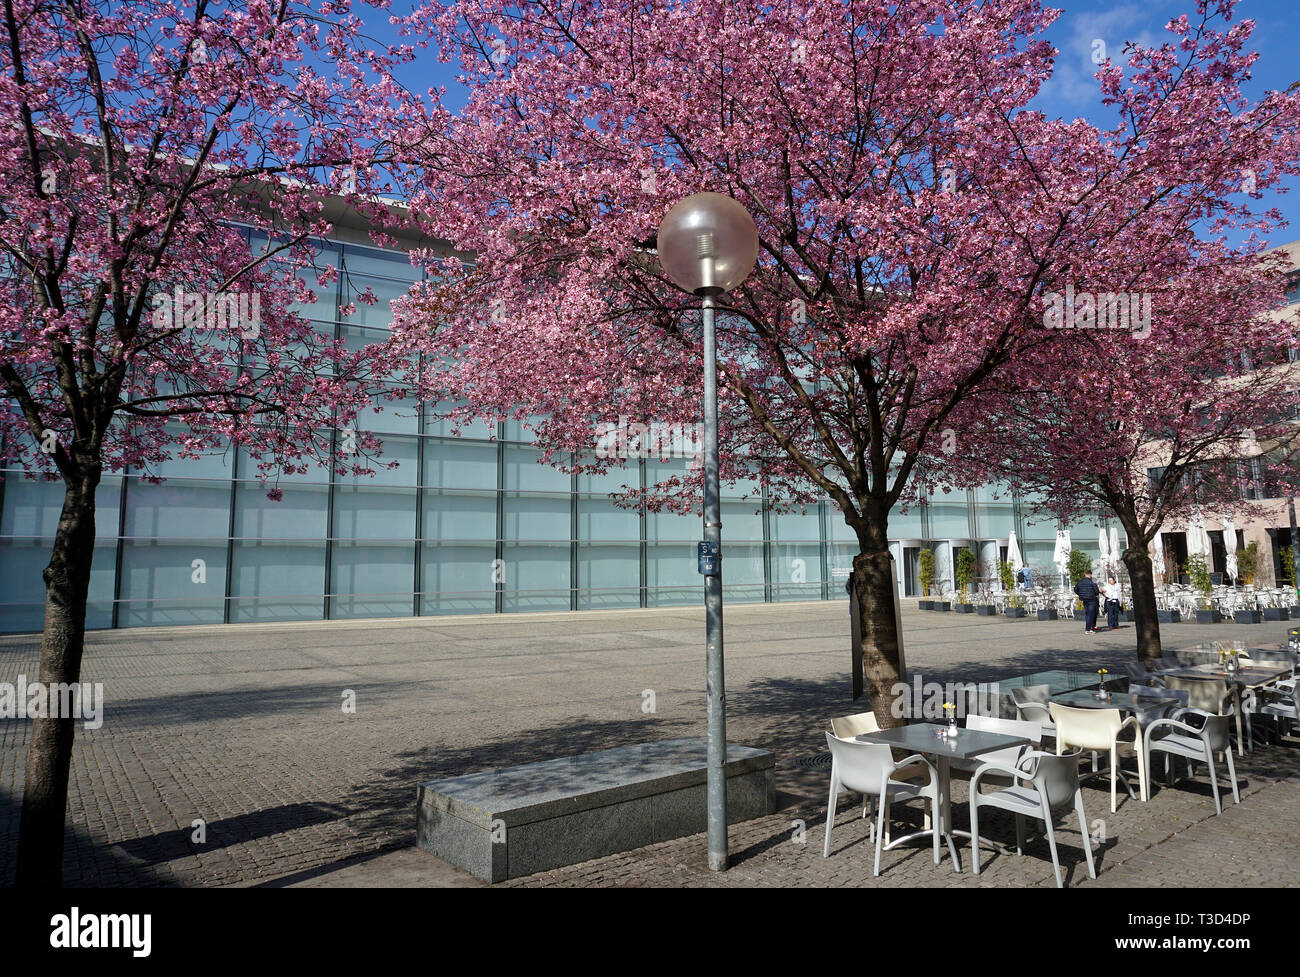 Flowering trees at glas facade of New Museum, museum of art and design, Klarissen place, old town of Nuremberg, Franconia, Bavaria, Germany Stock Photo